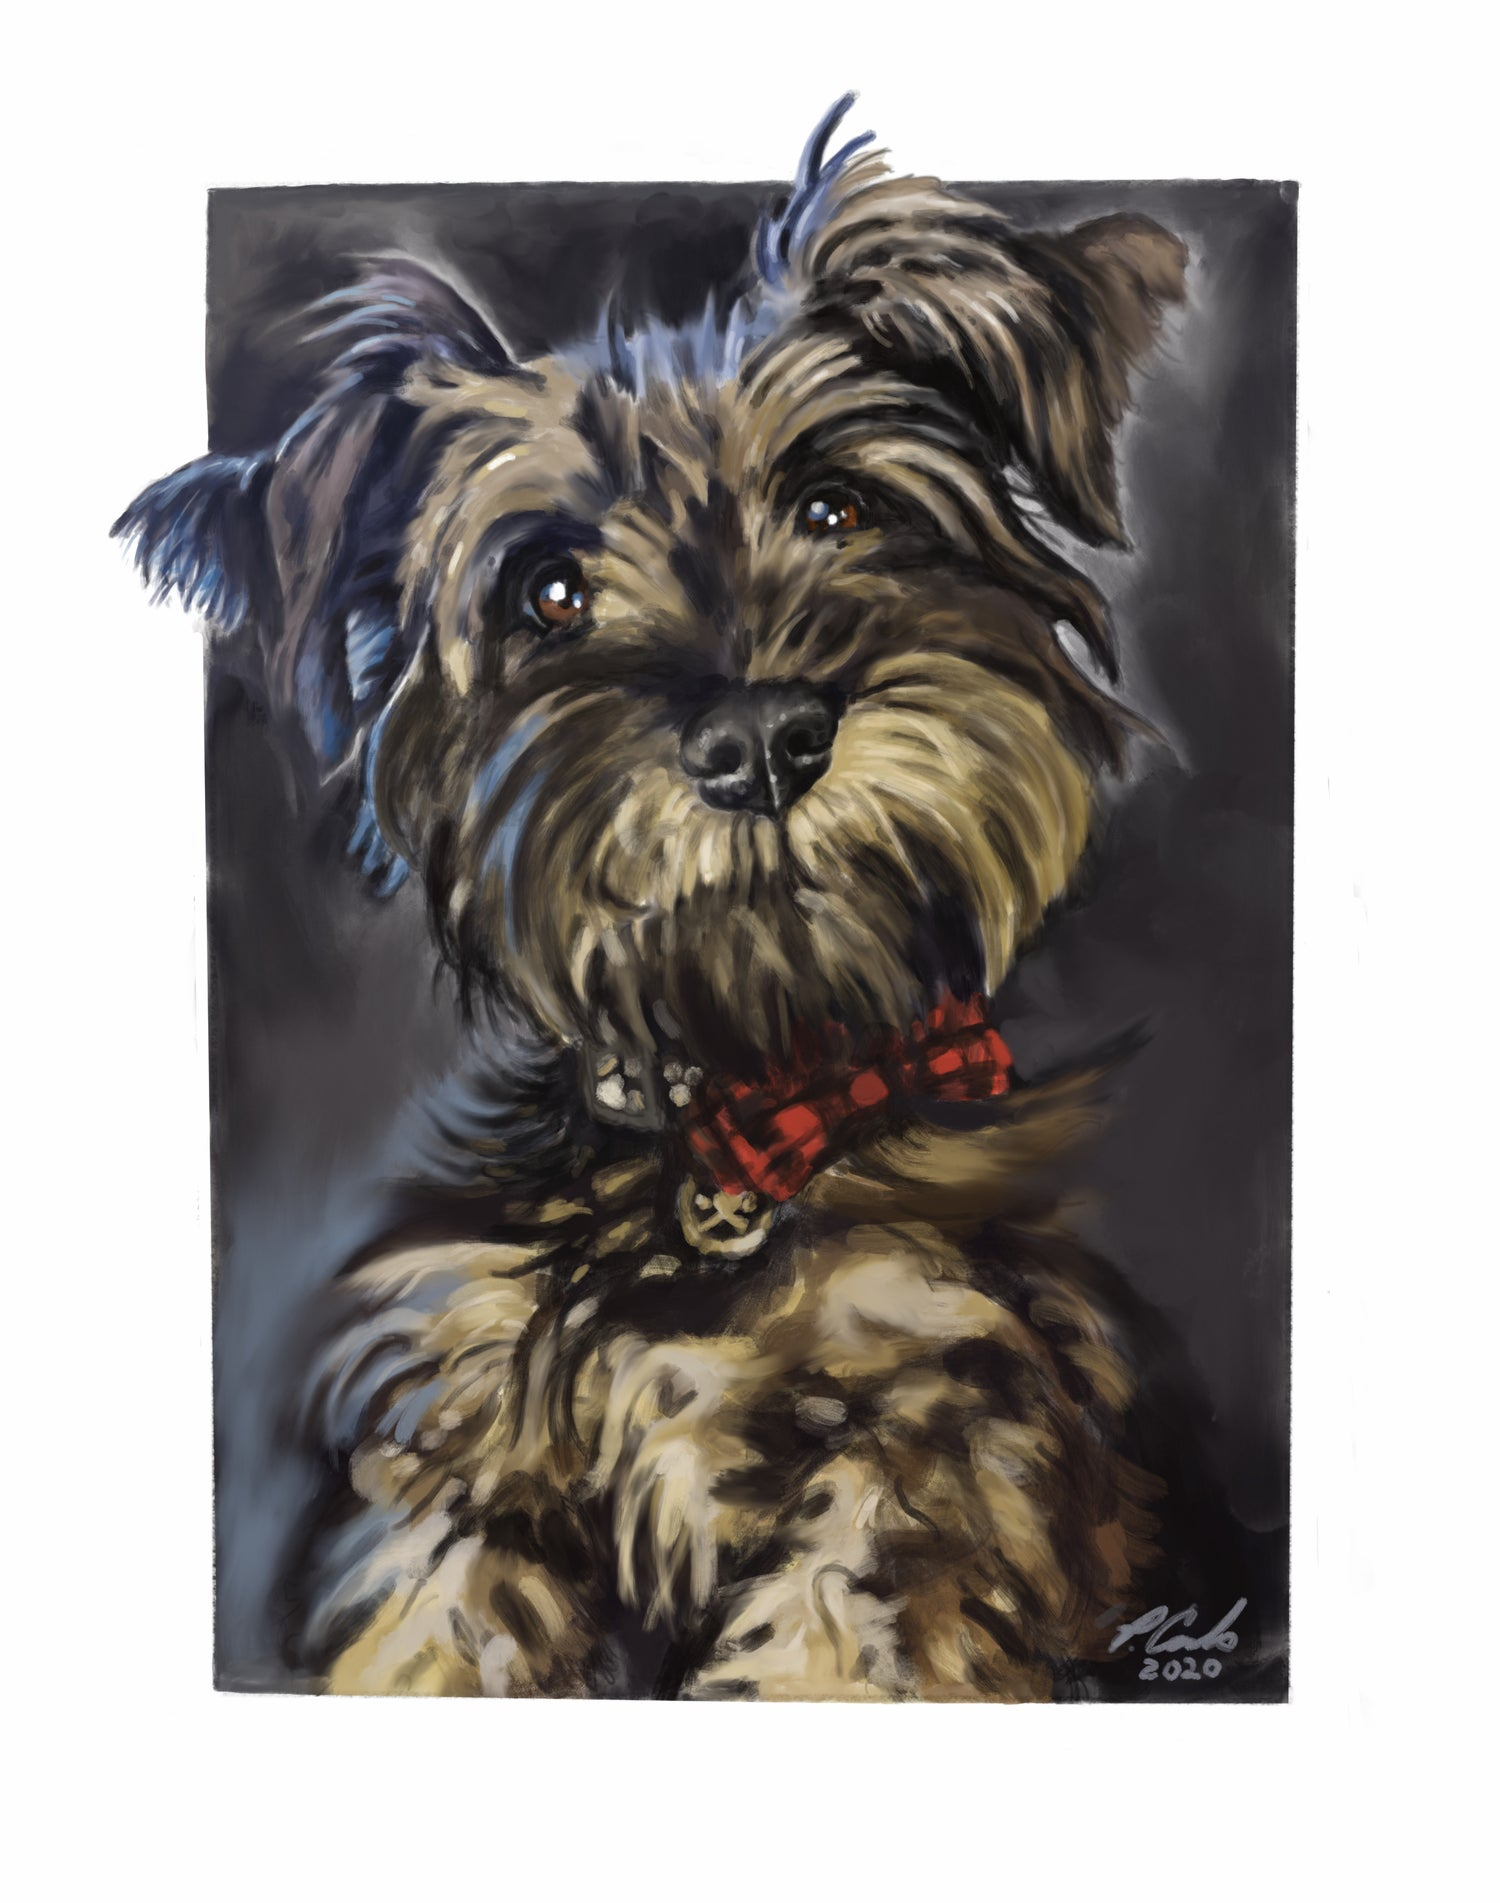 Image of Custom digital Pet Portraits by Patrick Cornolo